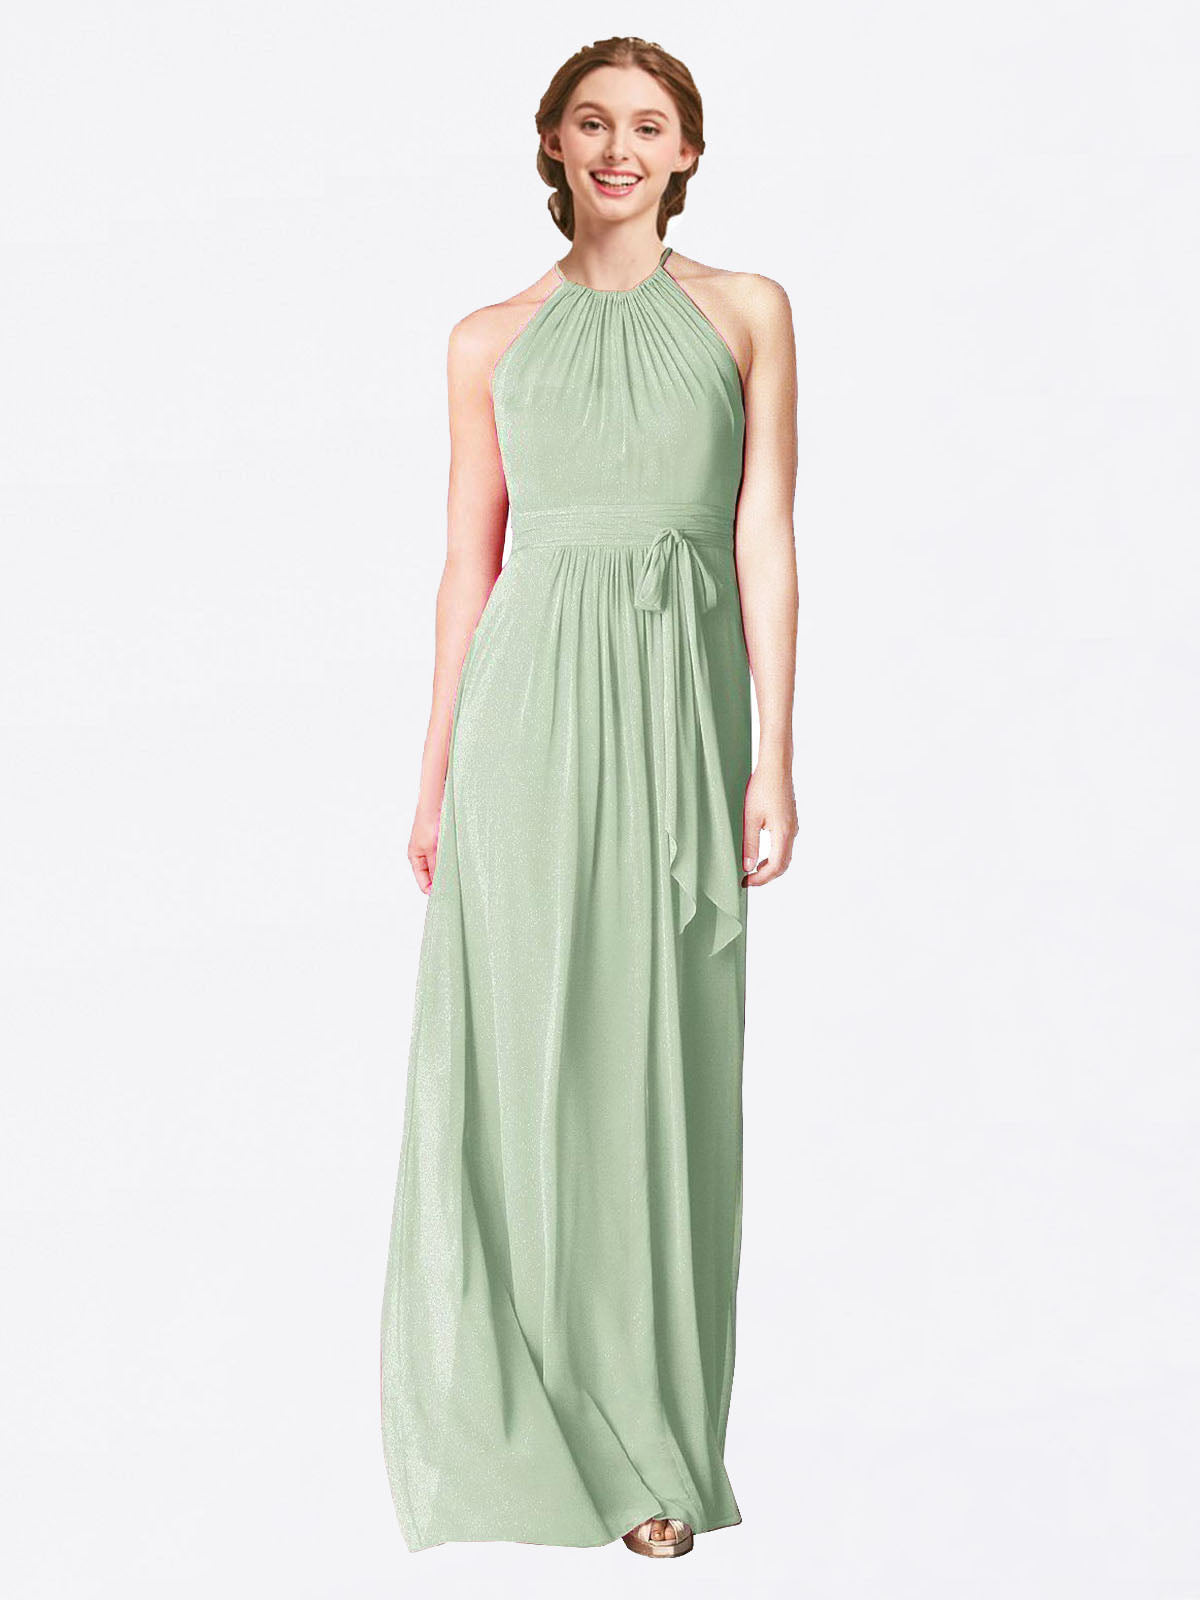 Long A-Line Halter Sleeveless Smoke Green Chiffon Bridesmaid Dress Laura